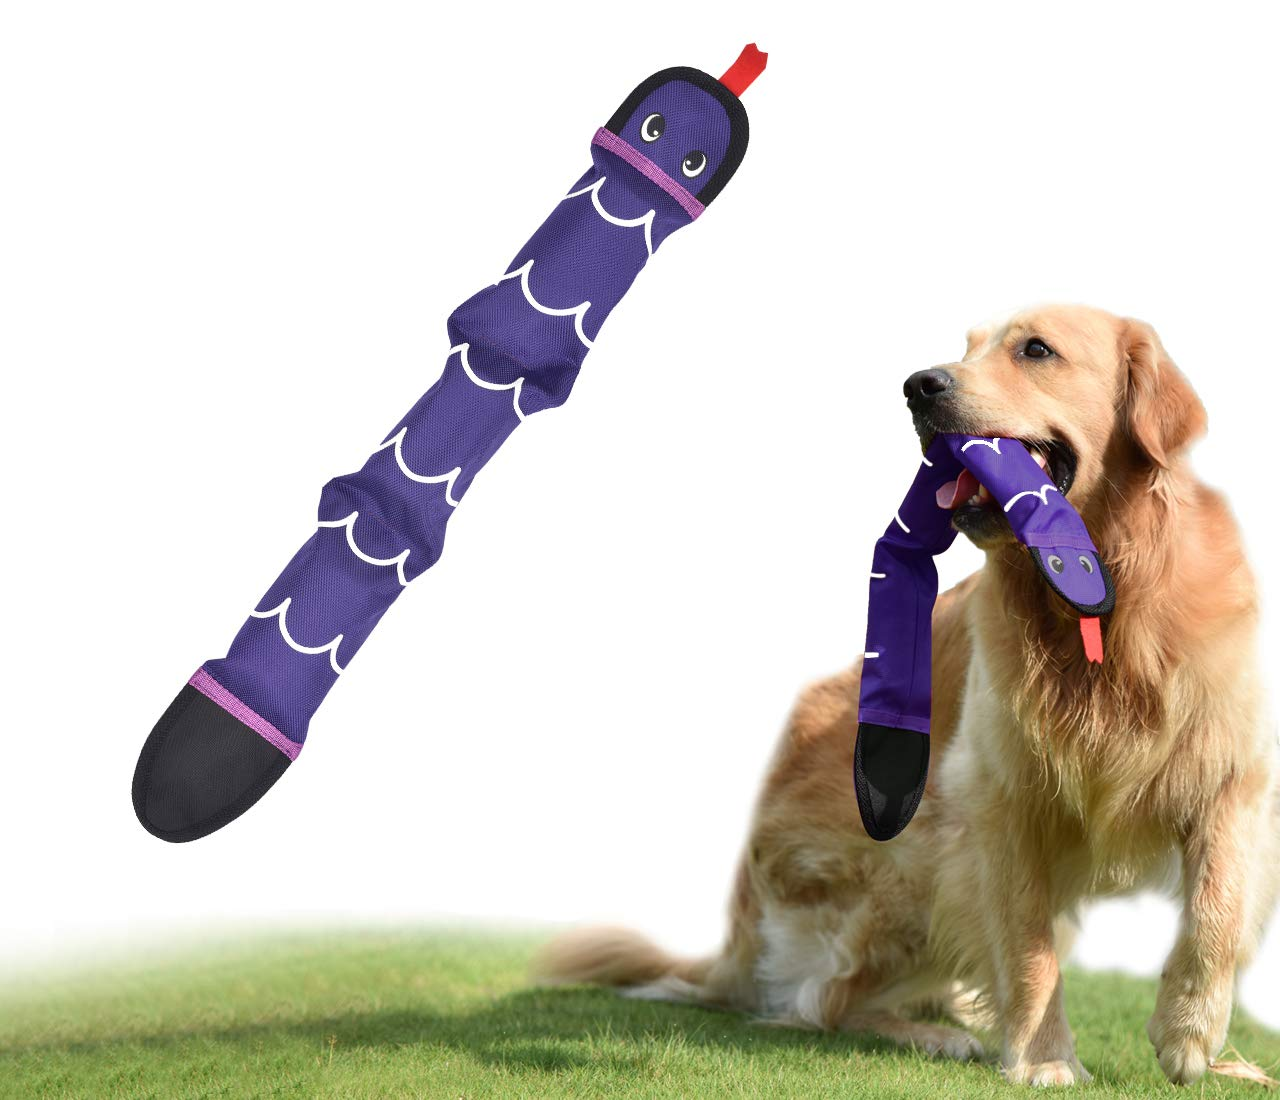 PetLike Squeaky Dog Toy, Snake Chew Toy for Small Medium Dogs, Interactive Durable Squeaky Dog Toy, 3 or 4 Squeakers Inside